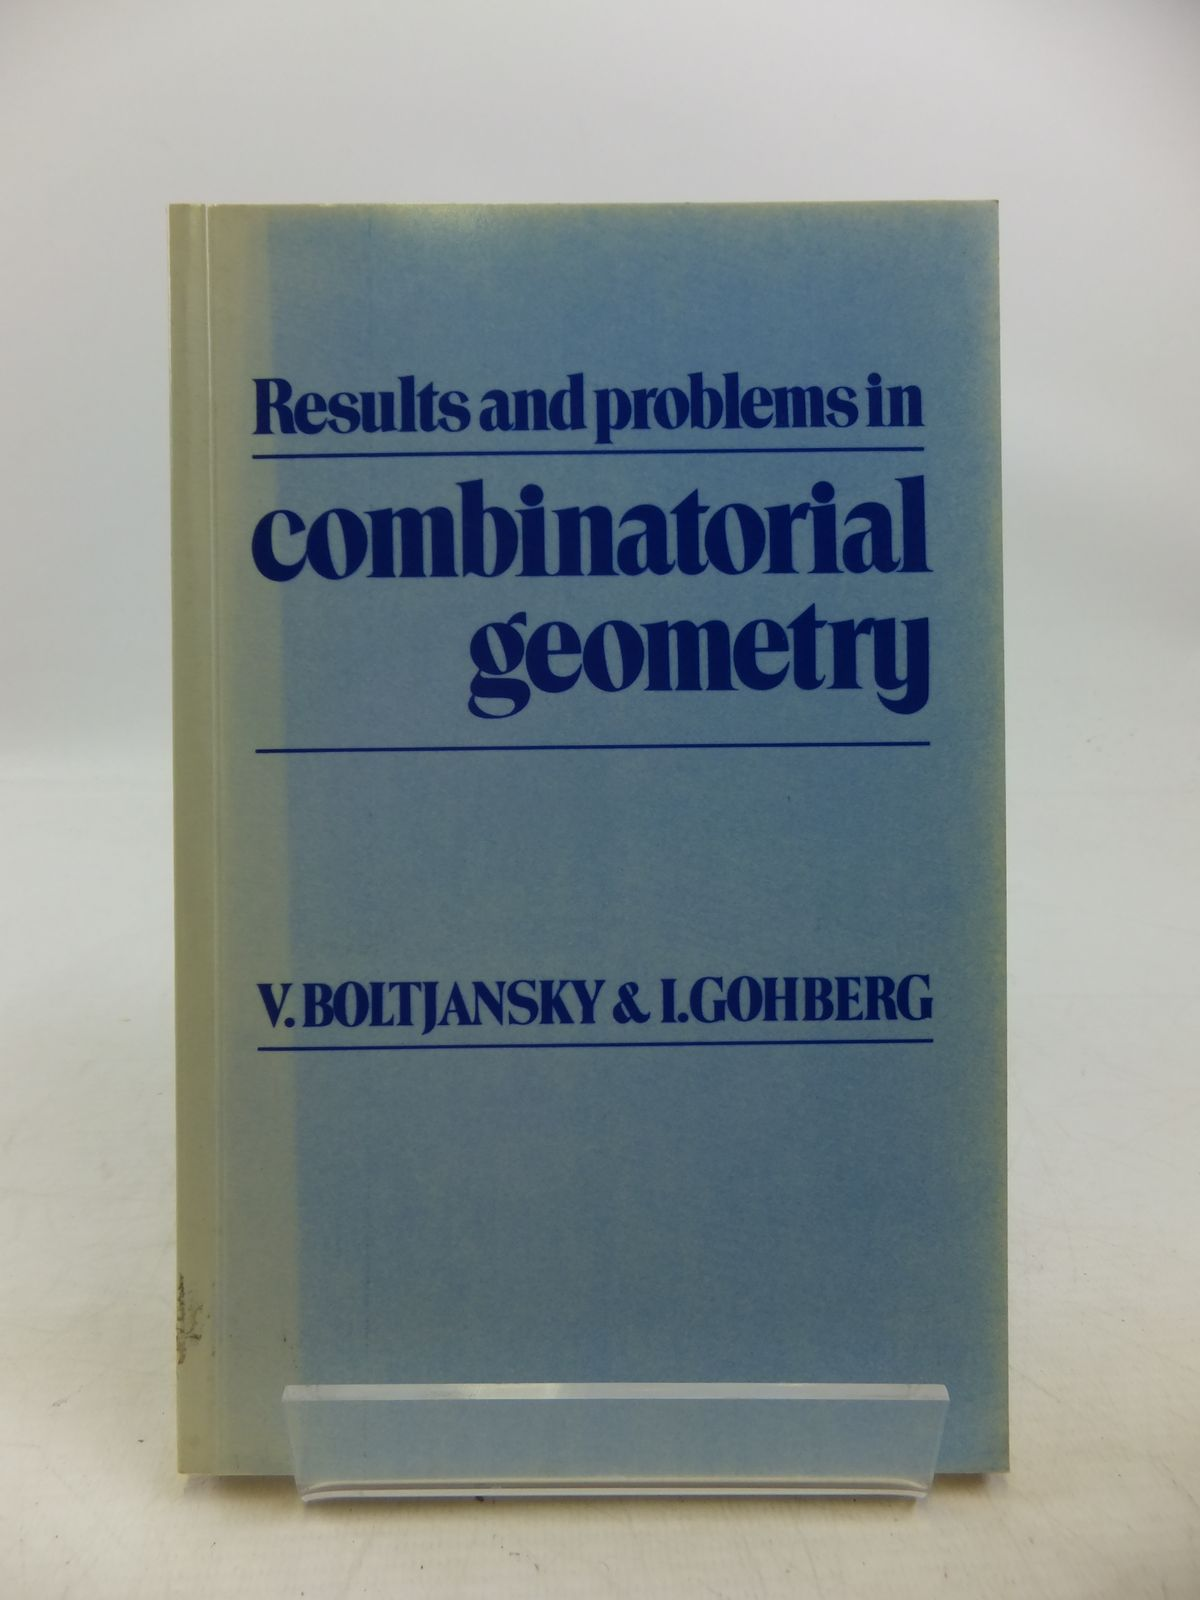 Photo of RESULTS AND PROBLEMS IN COMBINATORIAL GEOMETRY written by Boltjansky, V. Gohberg, I. published by Cambridge University Press (STOCK CODE: 2120297)  for sale by Stella & Rose's Books